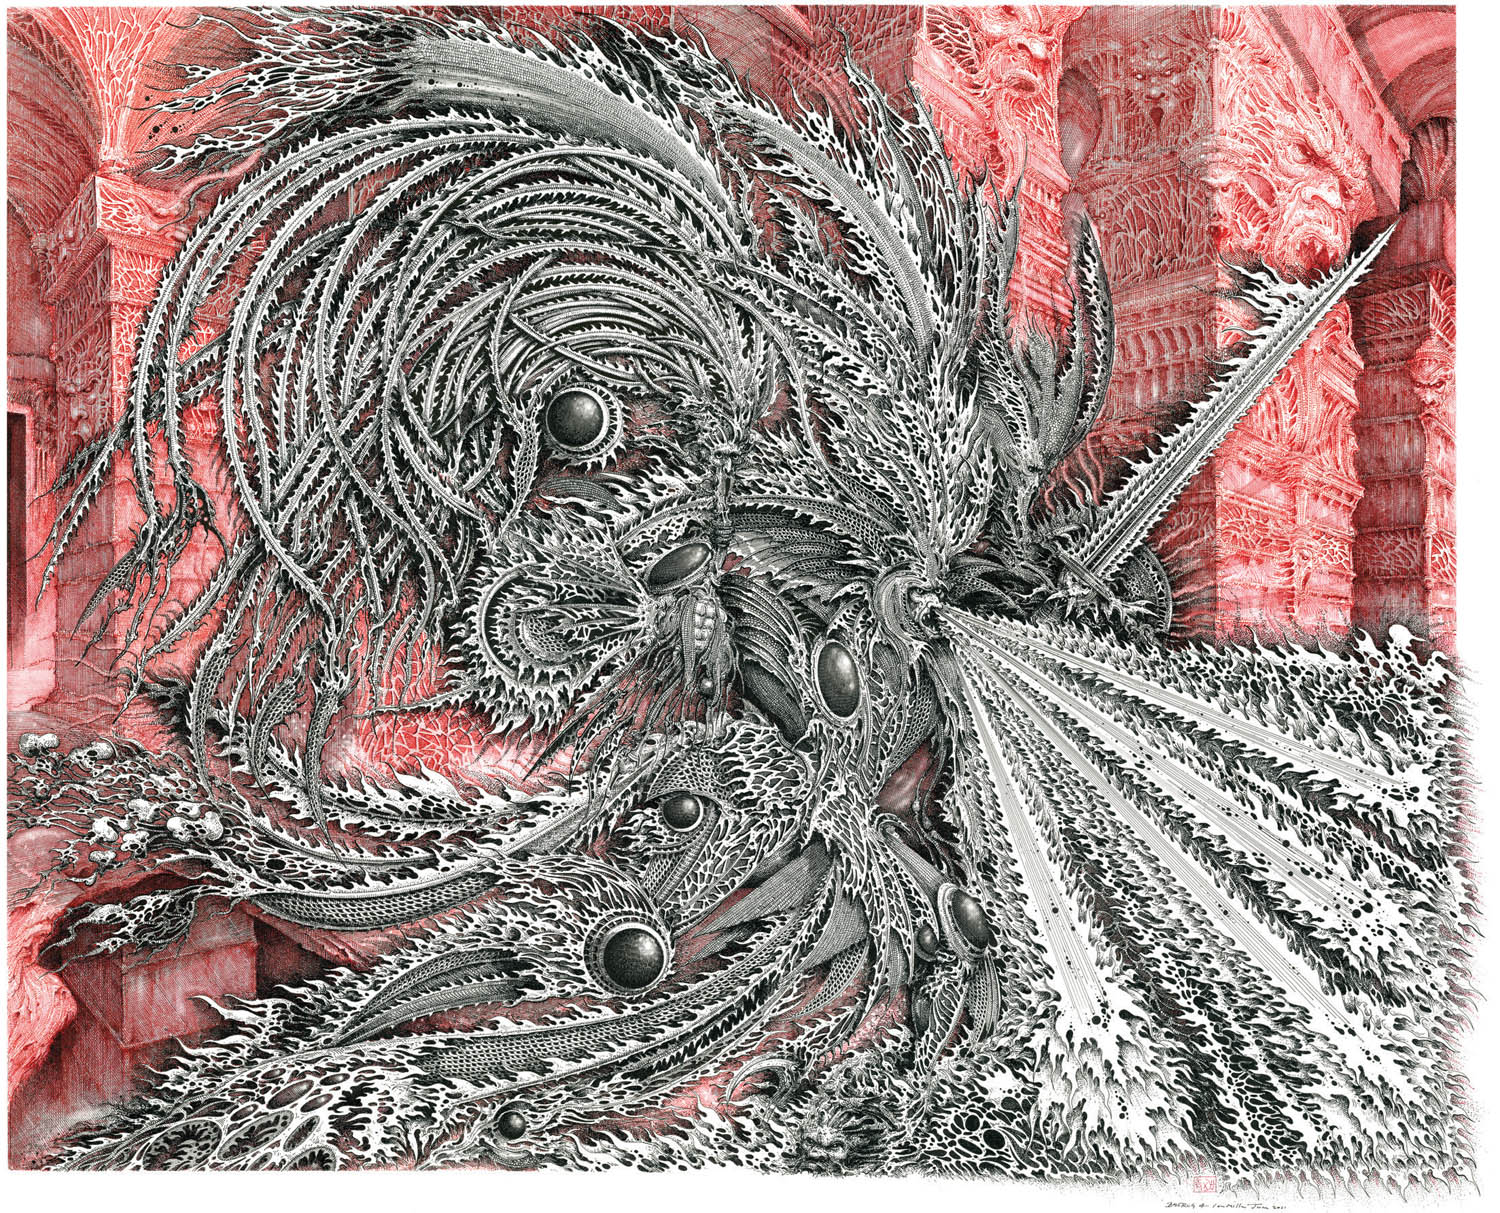 Fish Fiends And Fantasy The Gothic Art Of Ian Miller